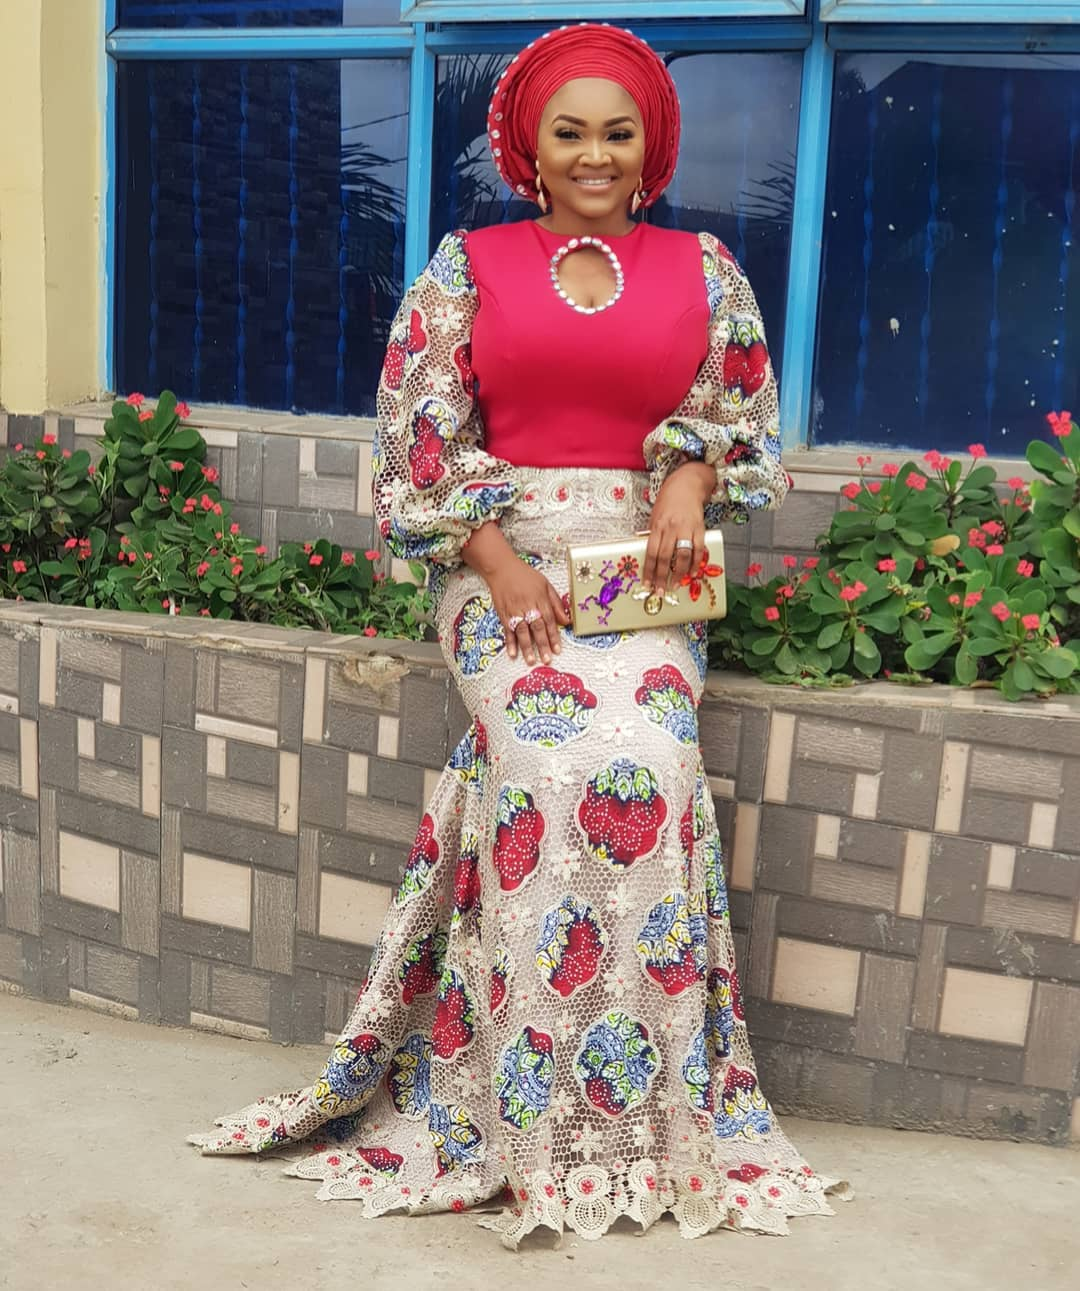 big-girl-mighty-god-mercy-aigbe-slays-in-owambe-look-as-she-shows-off-her-big-sister-3